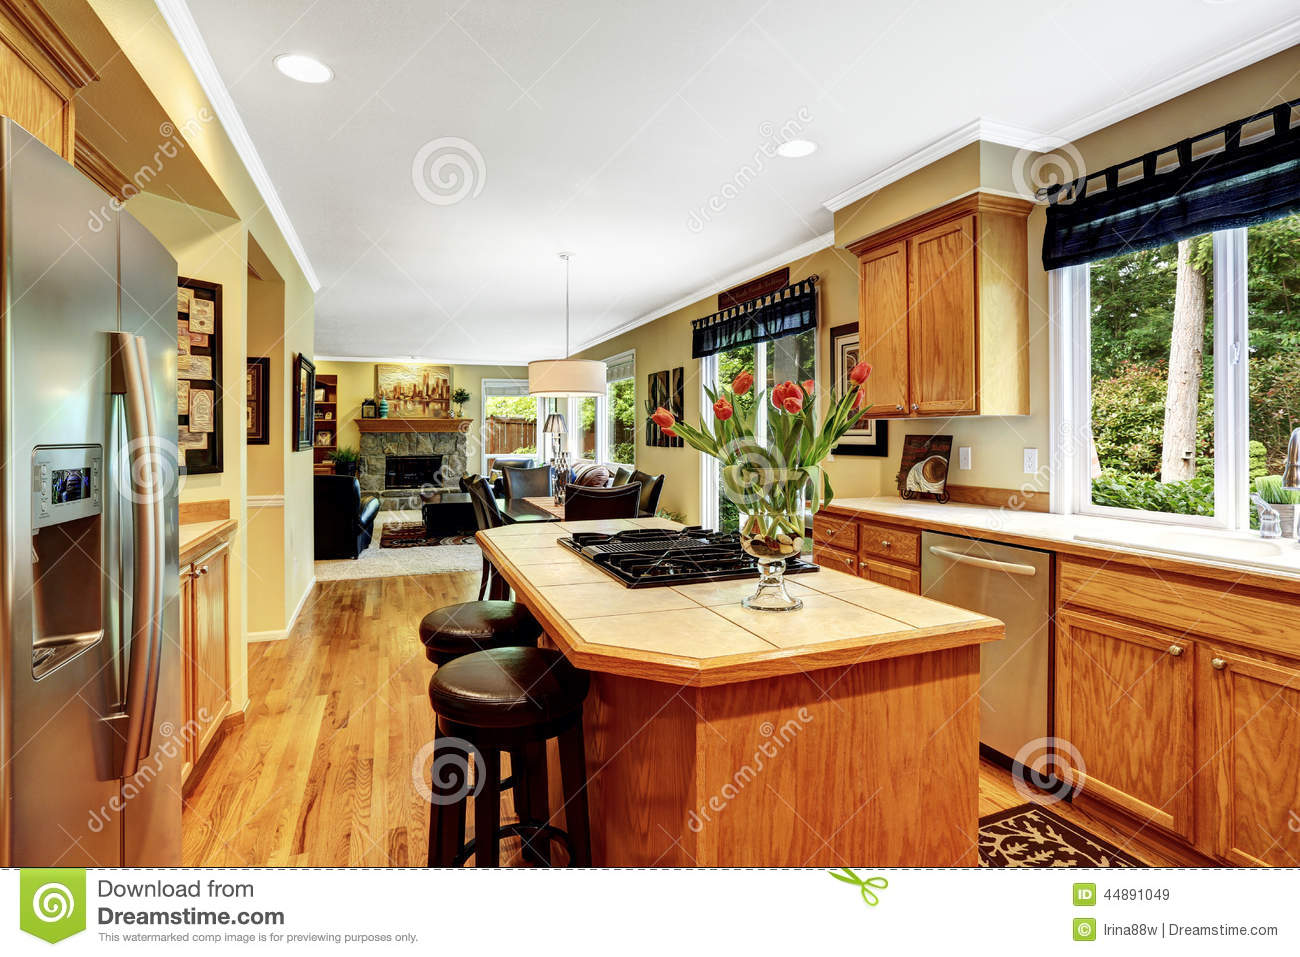 Kitchen Island Clearance Sale Luxury House Interior Kitchen Room Stock Image Image Of Kitchen